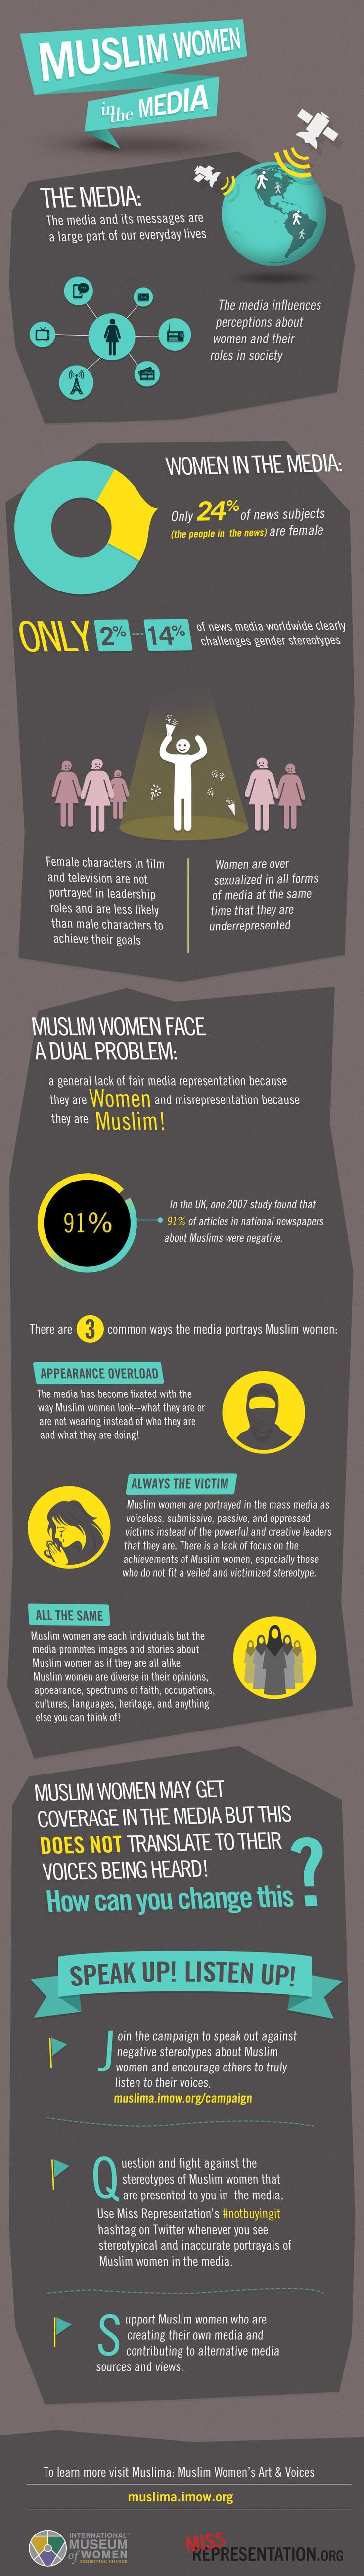 How does the media portray Muslim women? | IMOW Muslima